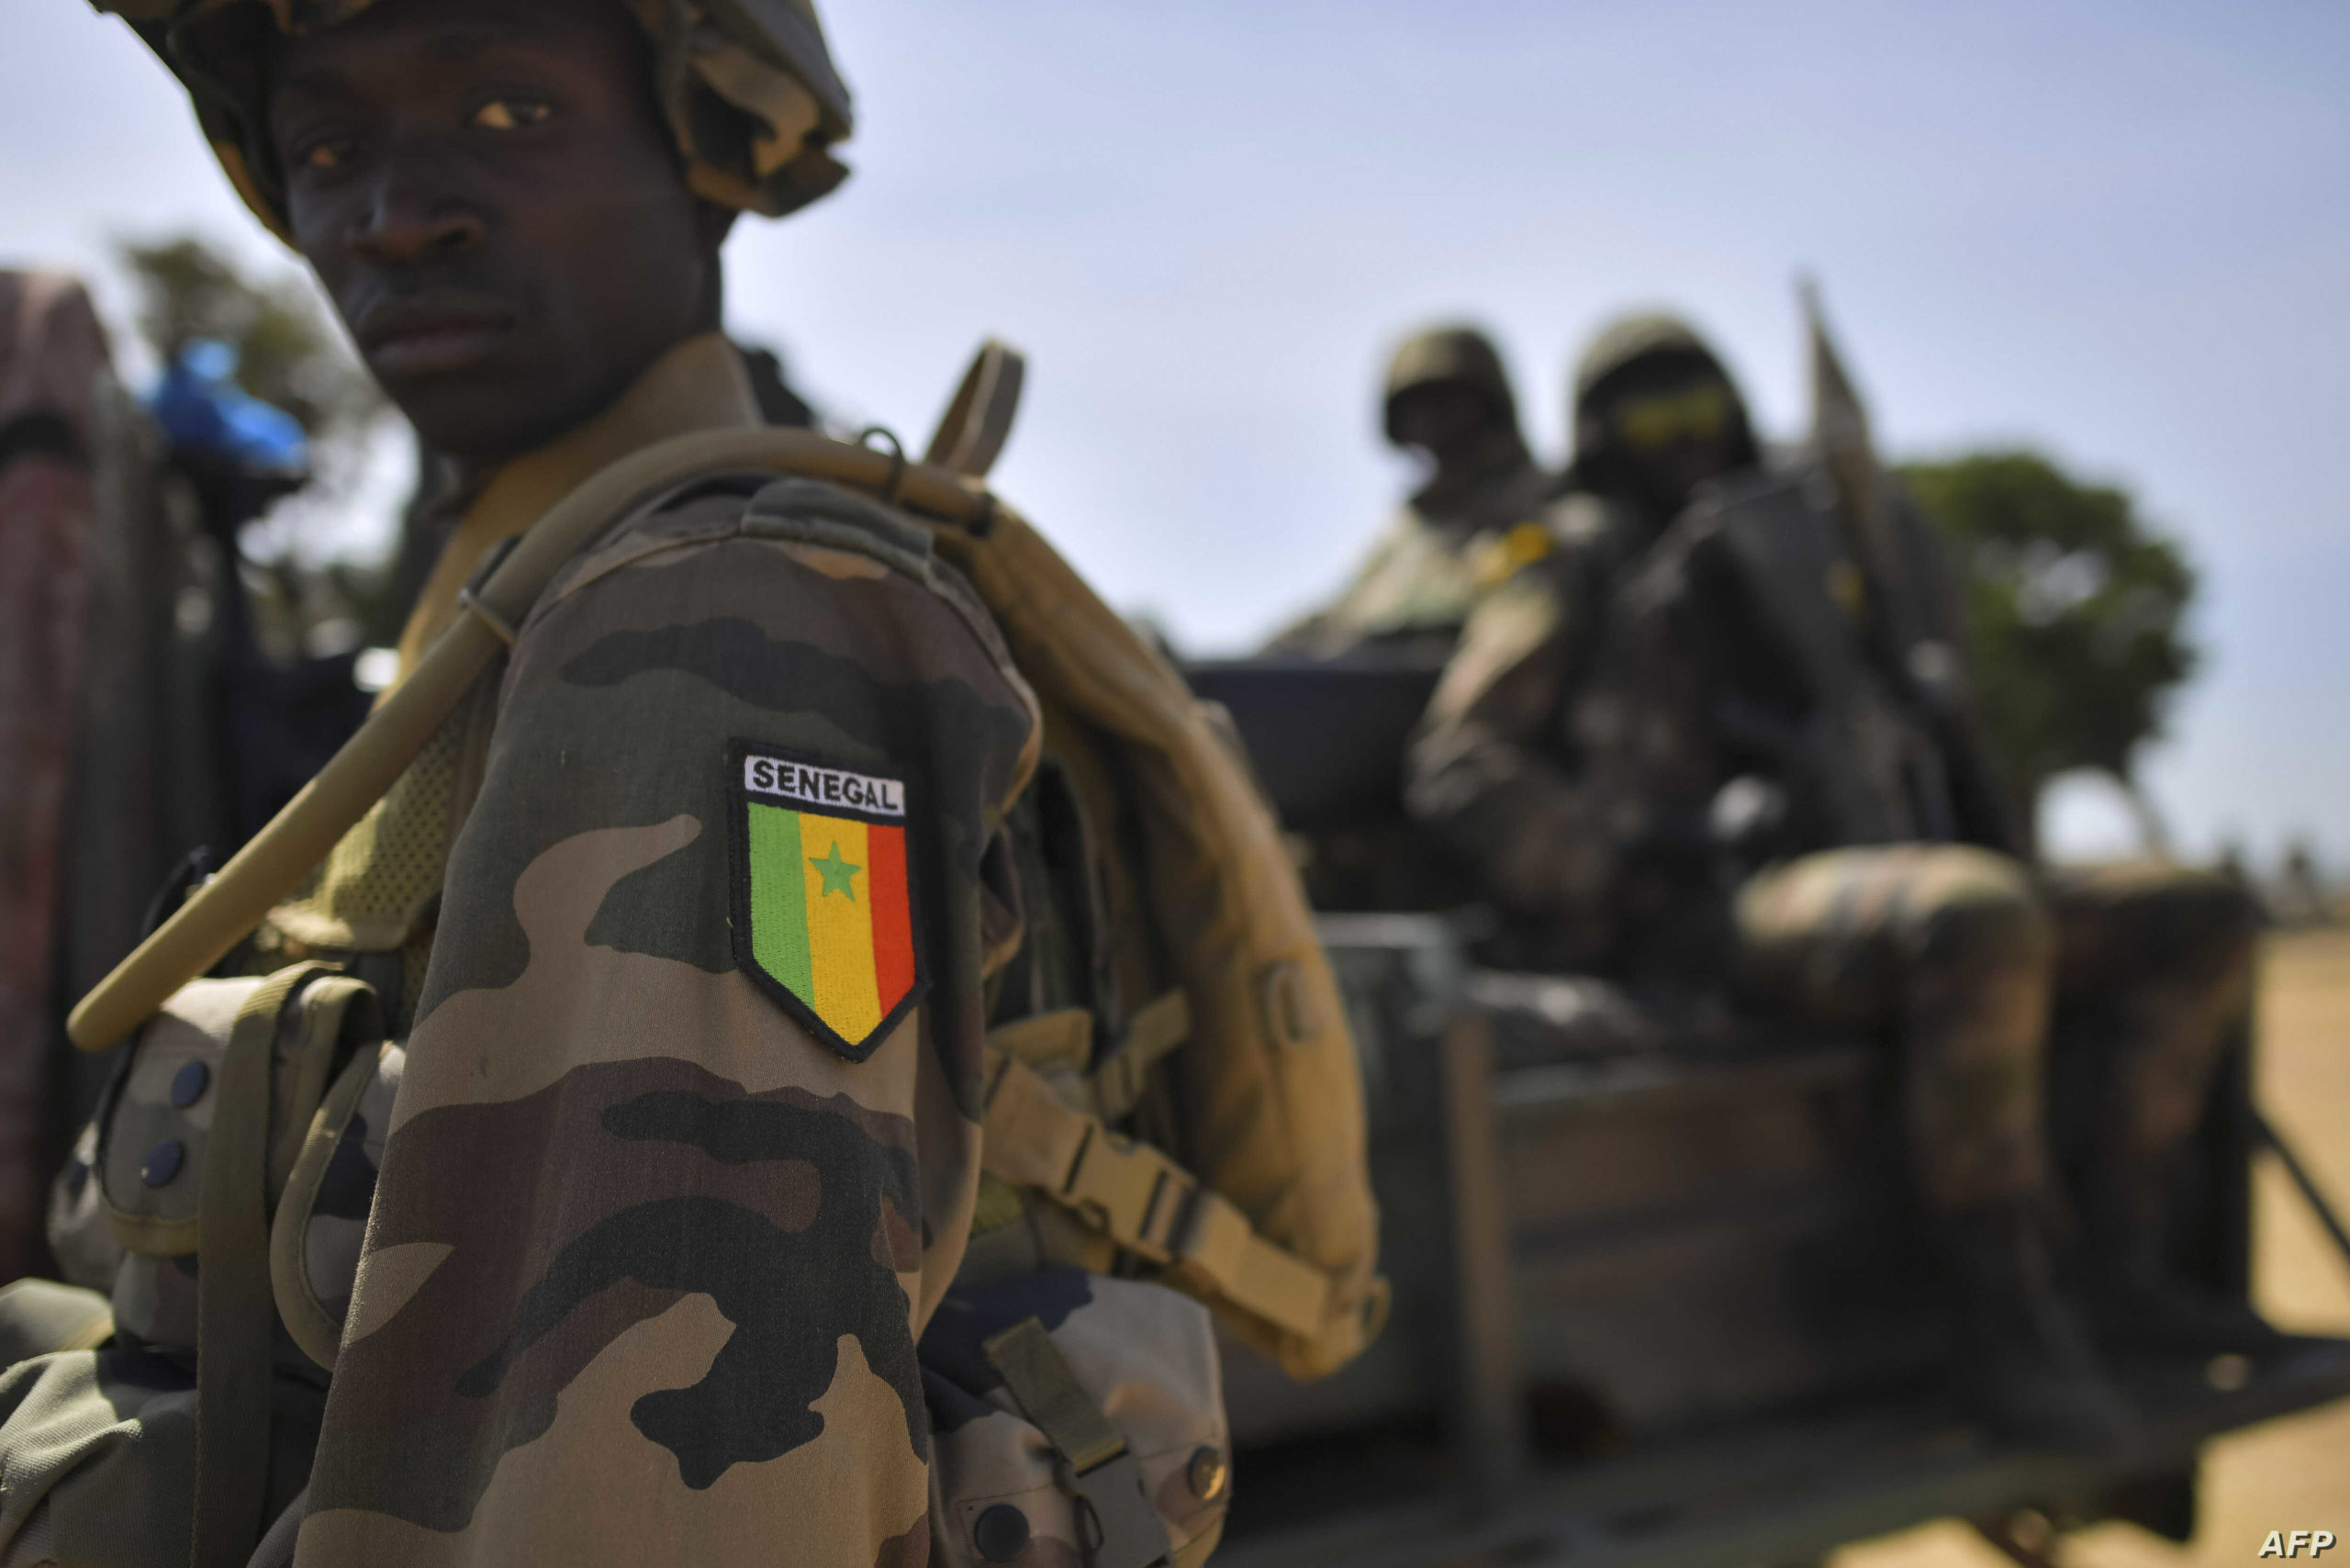 Senegalese soldiers members of ECOWAS forces (Economic Community of West African States) patrol in Barra, on January 22, 2017.